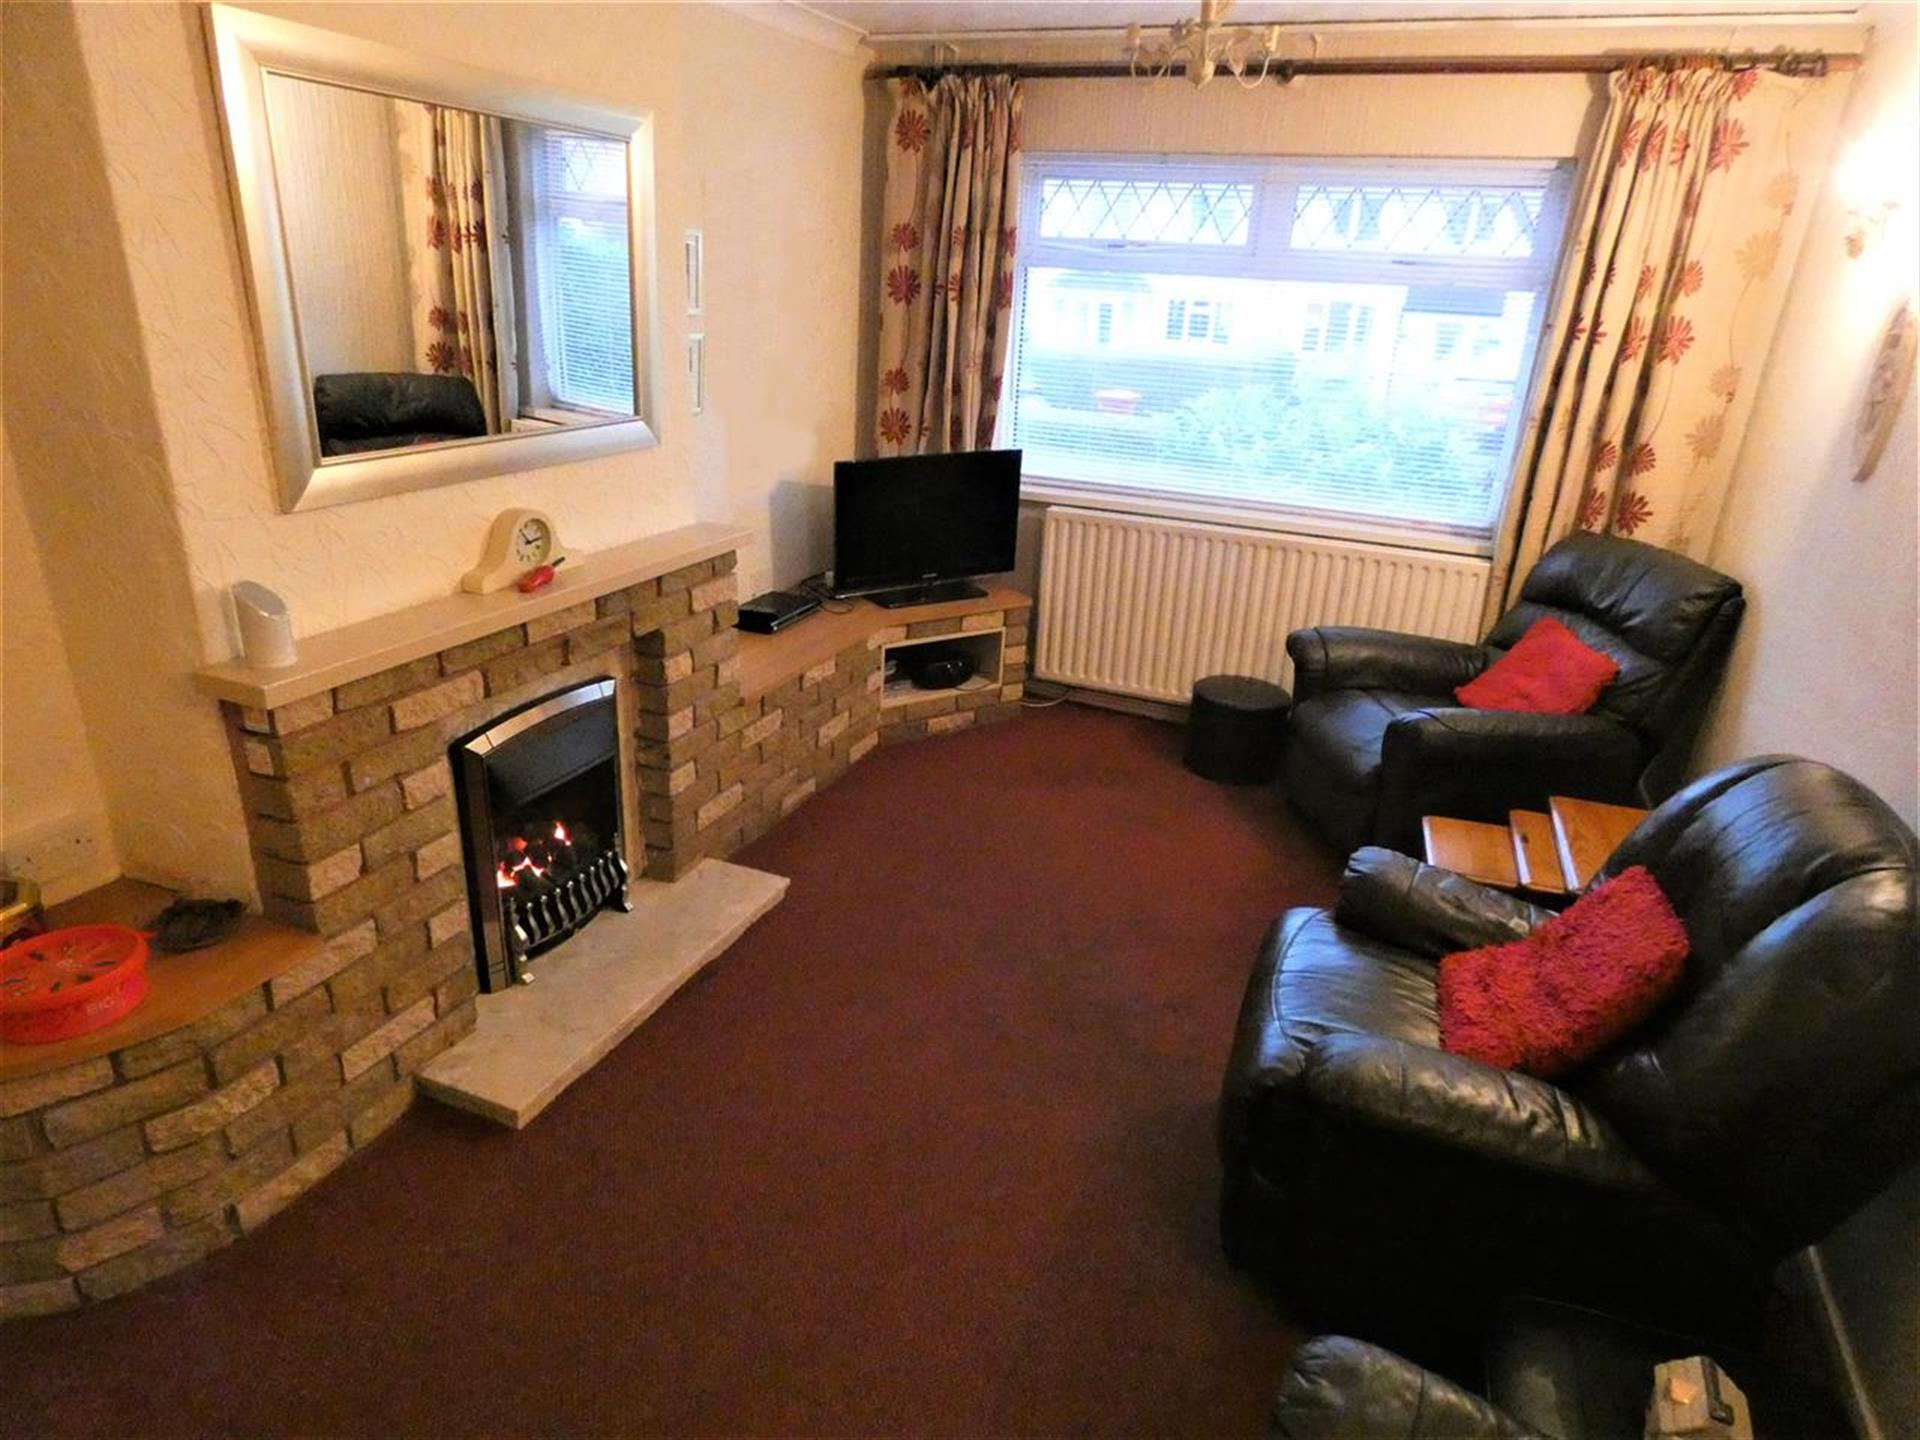 4 Bedroom End Terraced House For Sale - Reception Room One